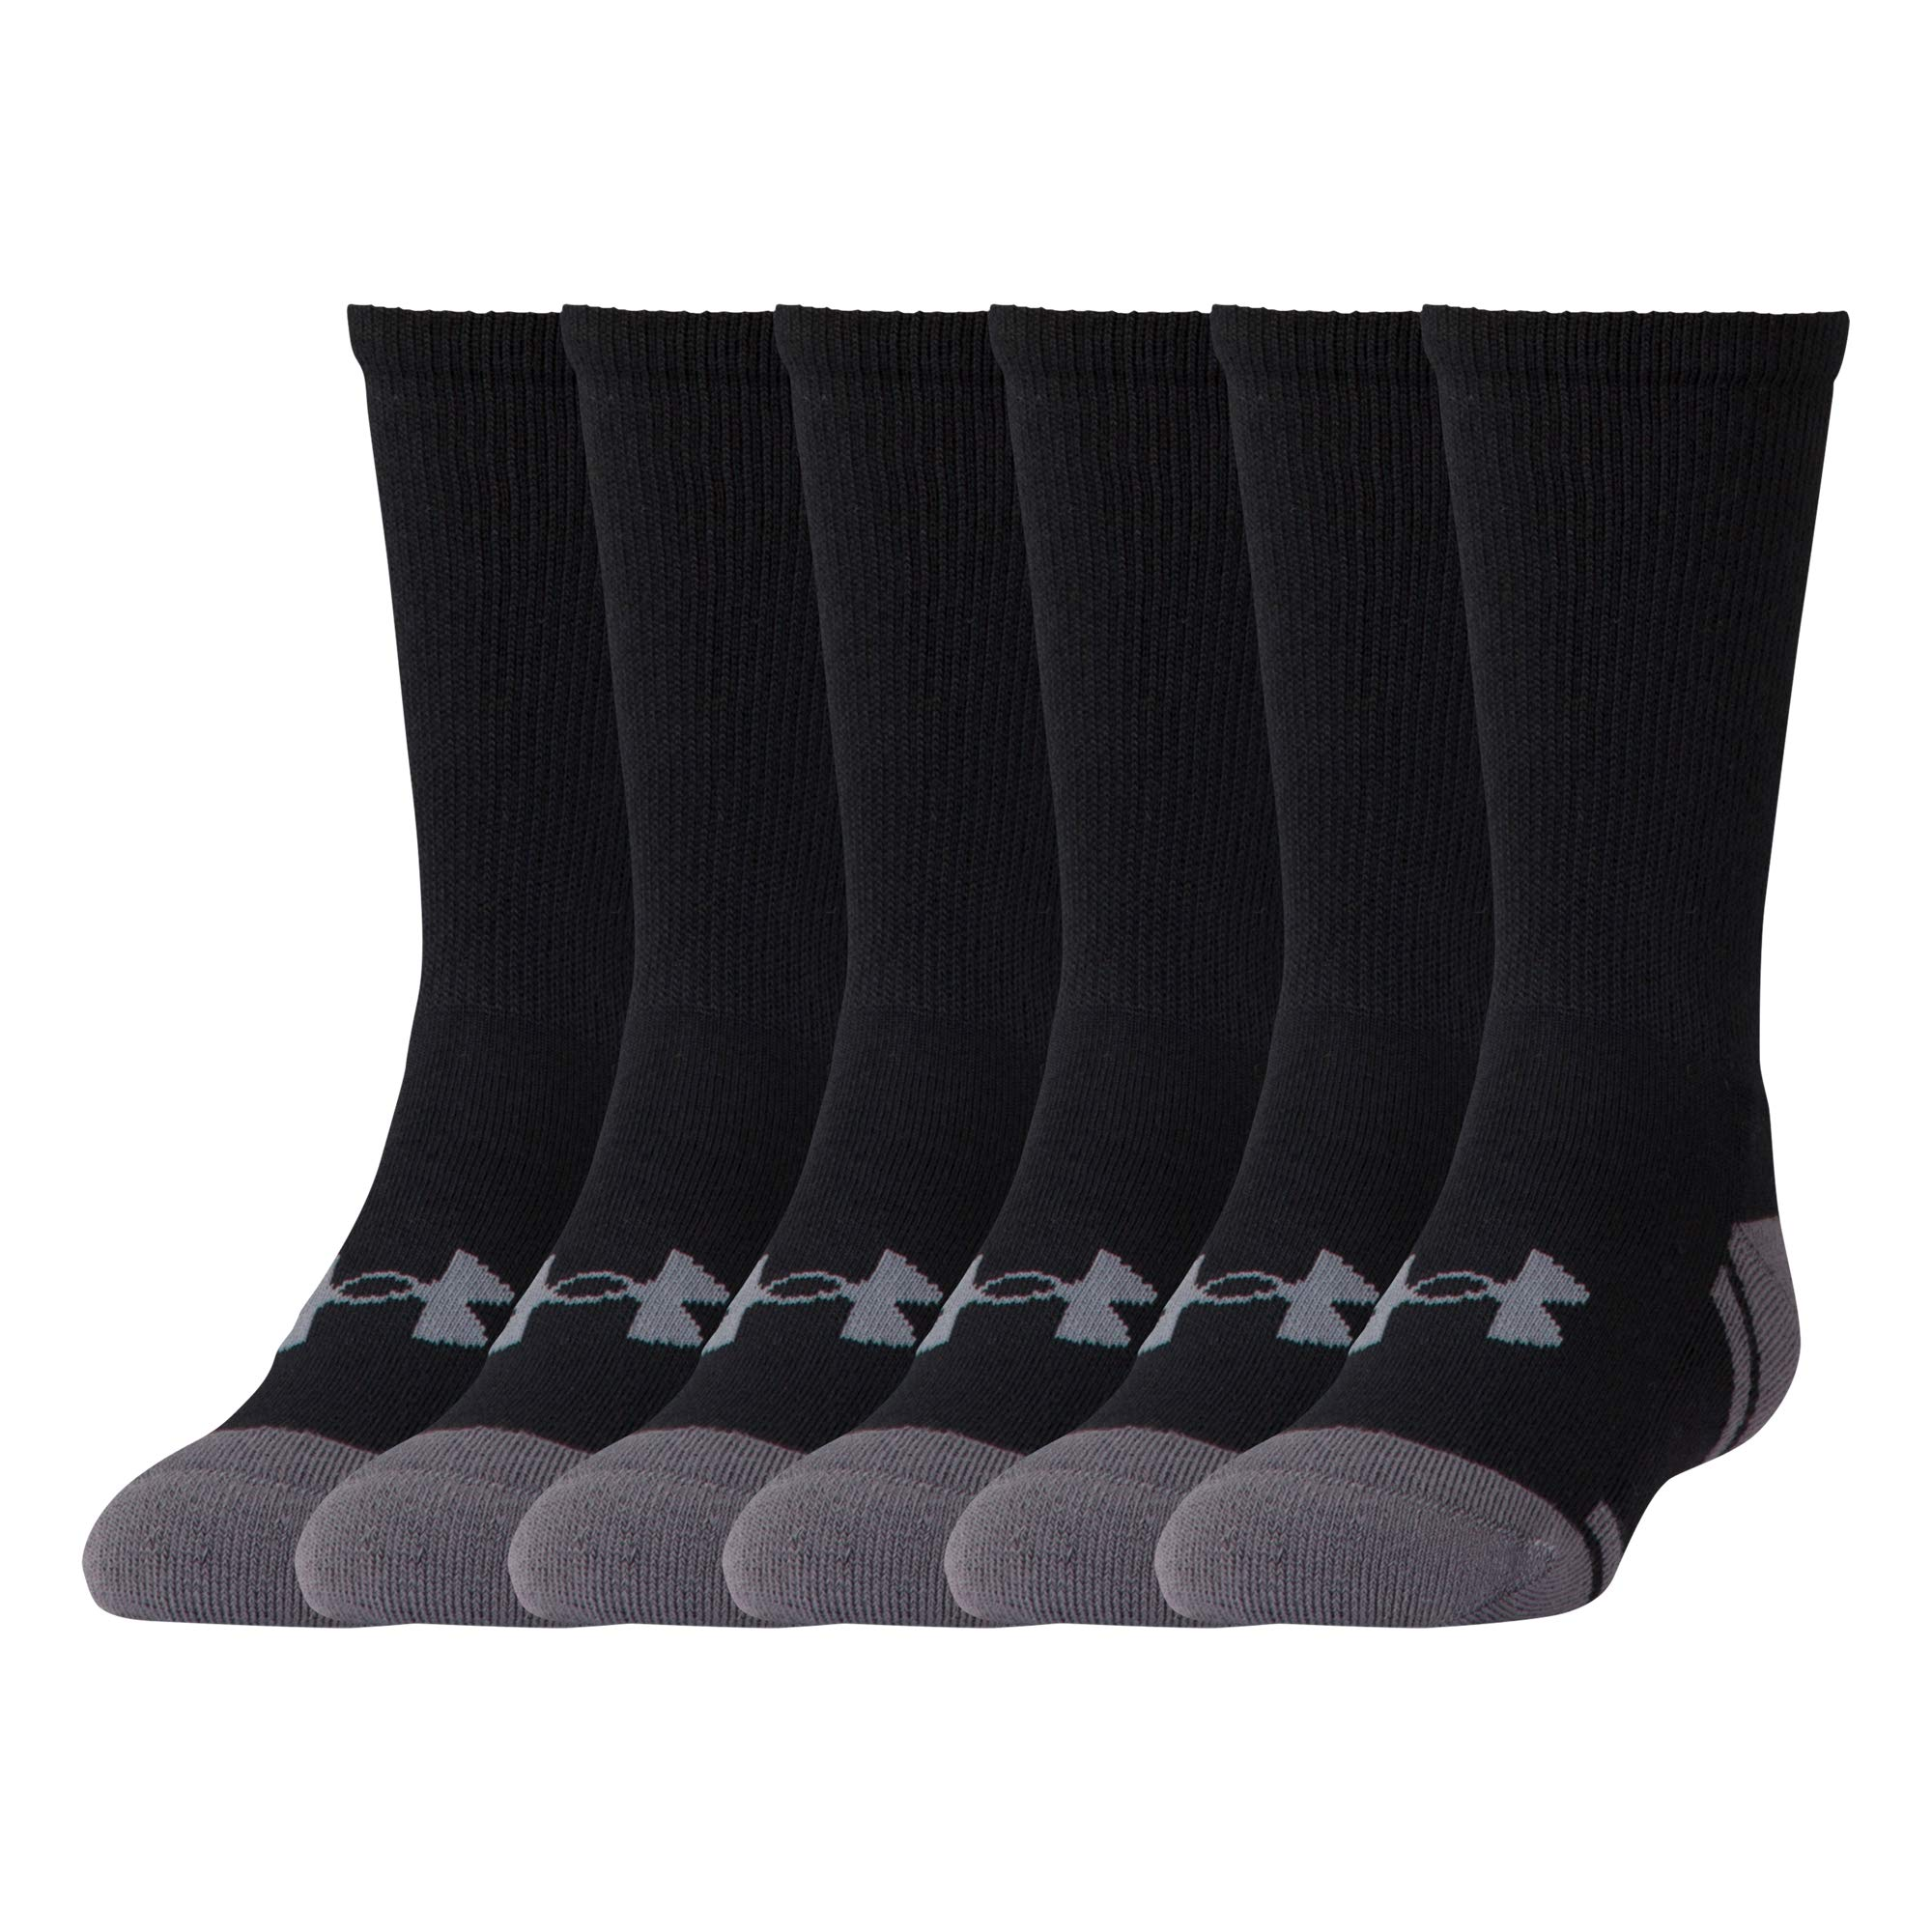 UNDER ARMOUR Youth Resistor 3.0 Crew Athletic Socks (6 Pack), Black/Graphite, Youth Large by Under Armour